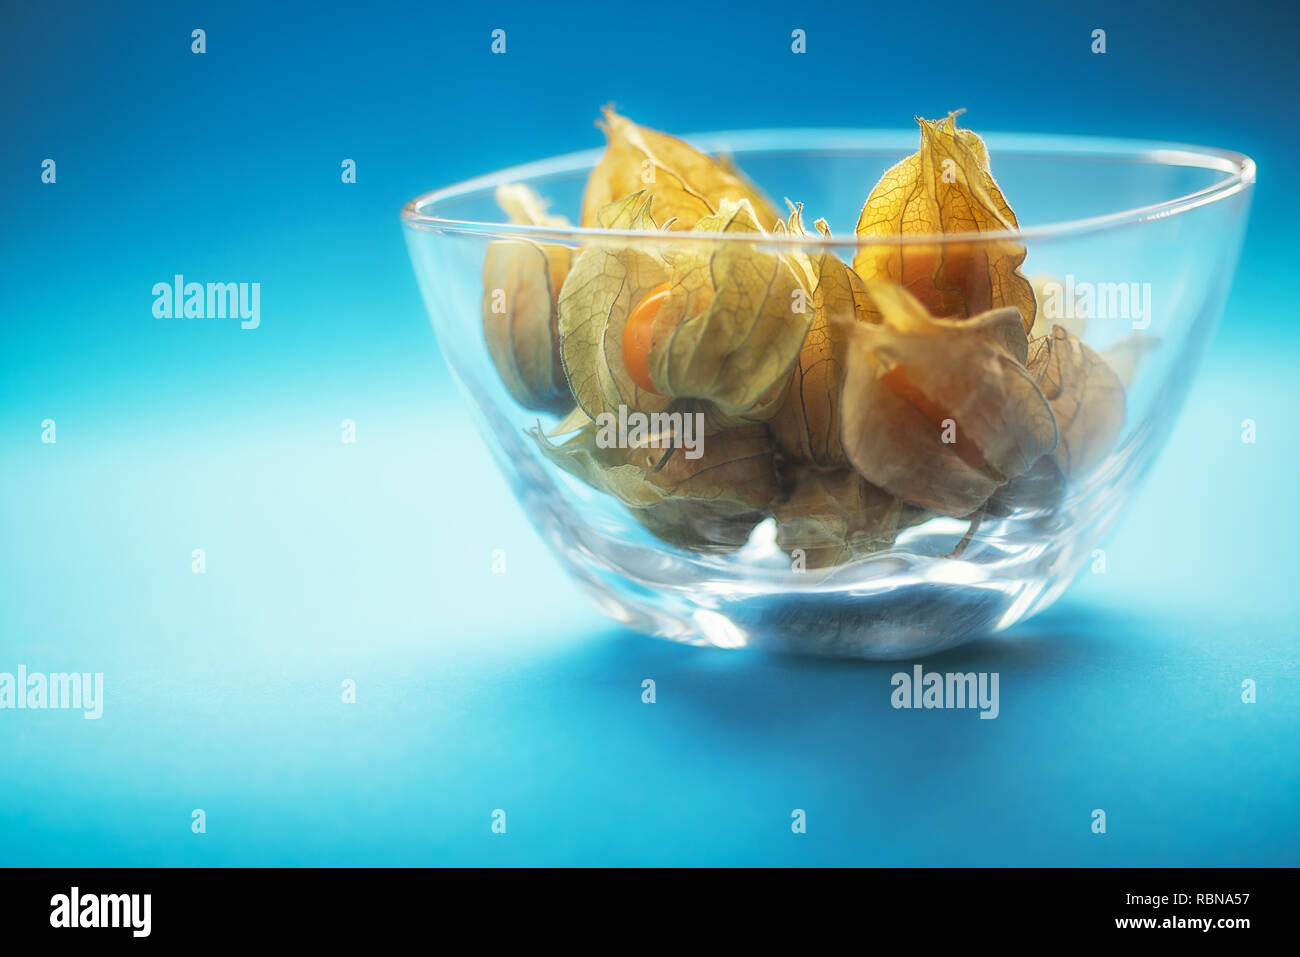 Physalis in a glass bowl with blue background - Stock Image